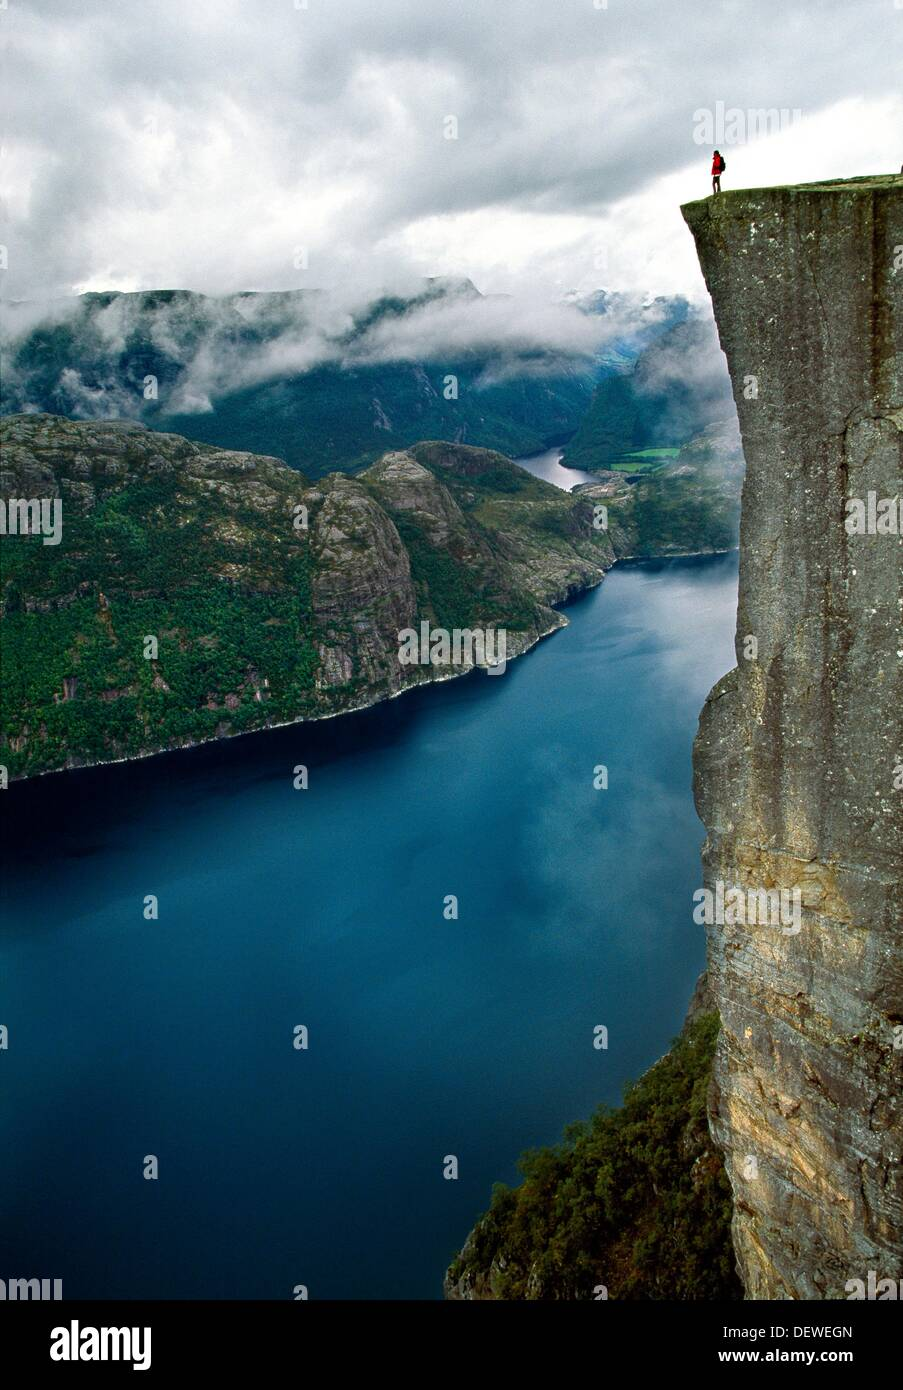 Preikestolen, Pulpit Rock, 600 meters over LyseFjord, Lyse Fjord, in Ryfylke district, Rogaland Region, It is the most popular - Stock Image